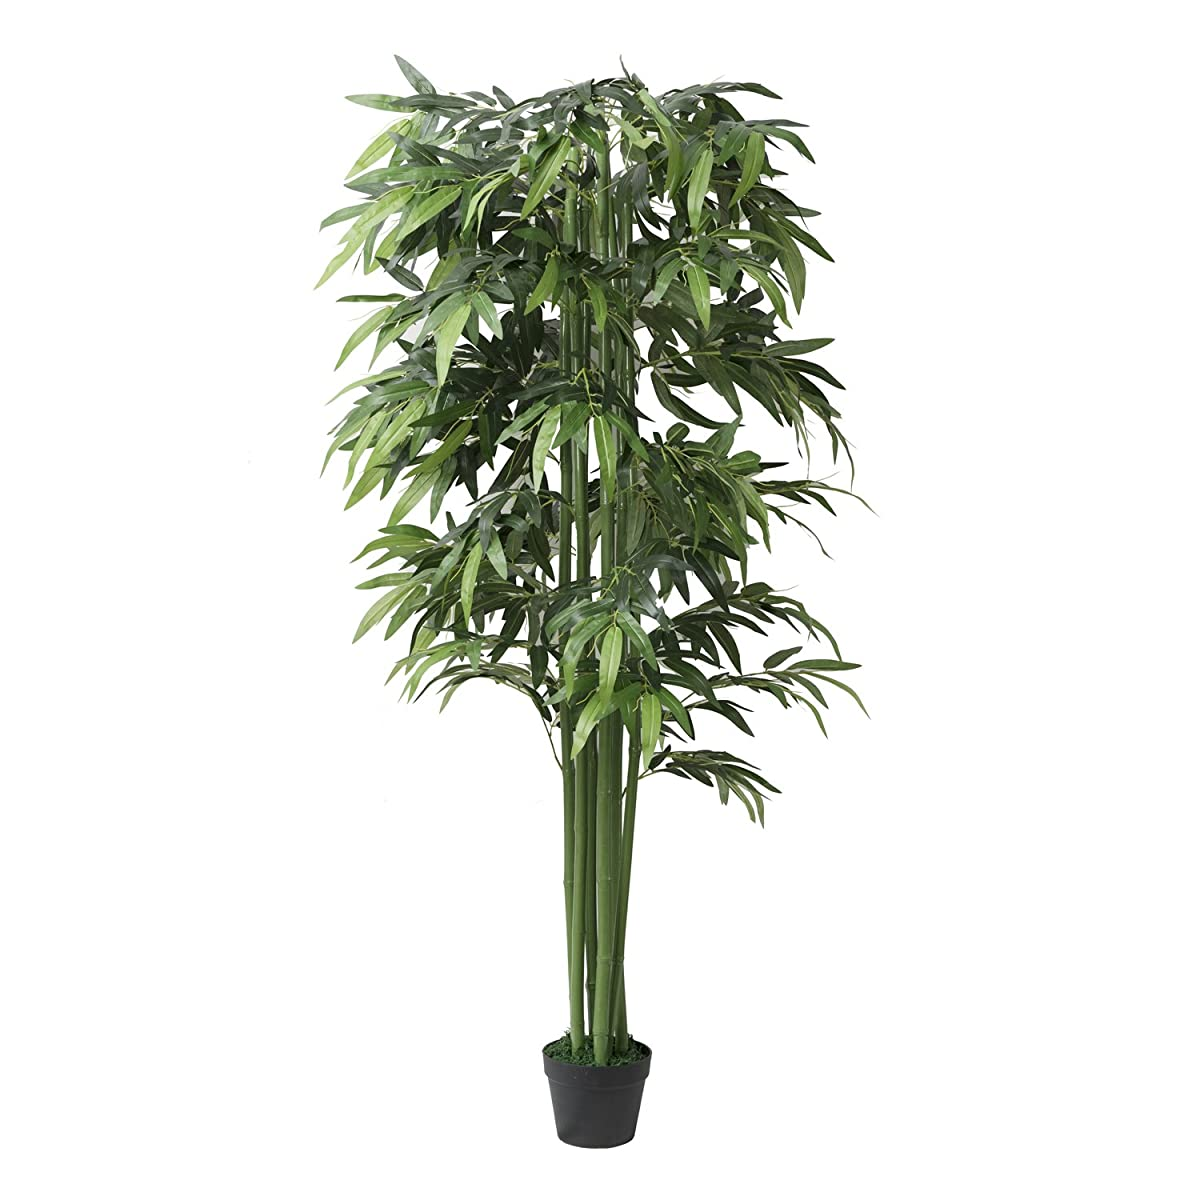 Artificial Bamboo Tree-5.9Ft artificial tree Plant Handmade Greenery Leaf Floor Plants for Indoor and Outdoor Decoration for Home Office and Hotels -Green Fake tree Plant Arrangement in Pot 1 Piece